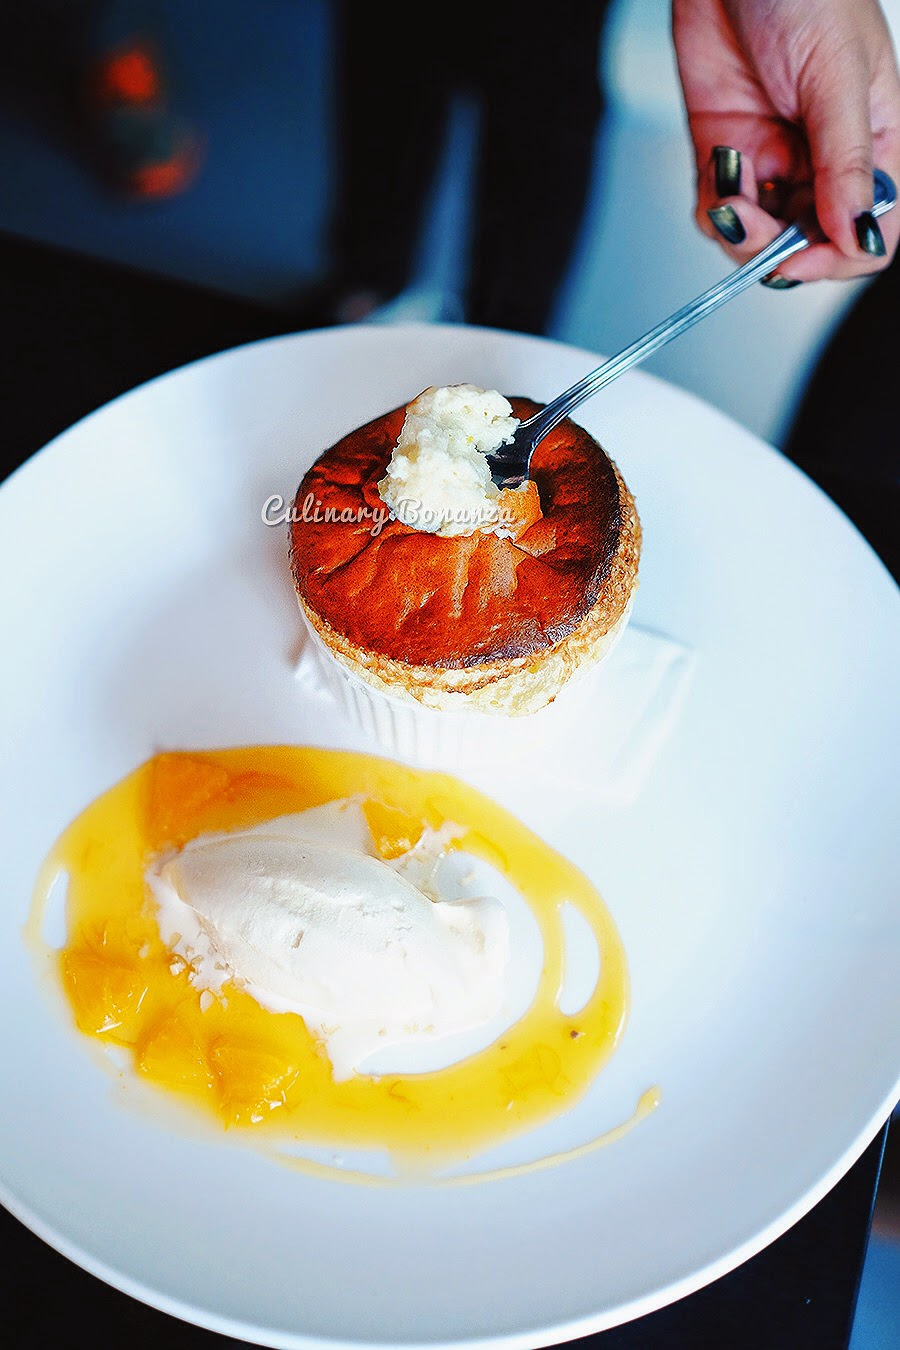 Orange Souffle - orange zest, segment orange and Haagen Dazs ice cream